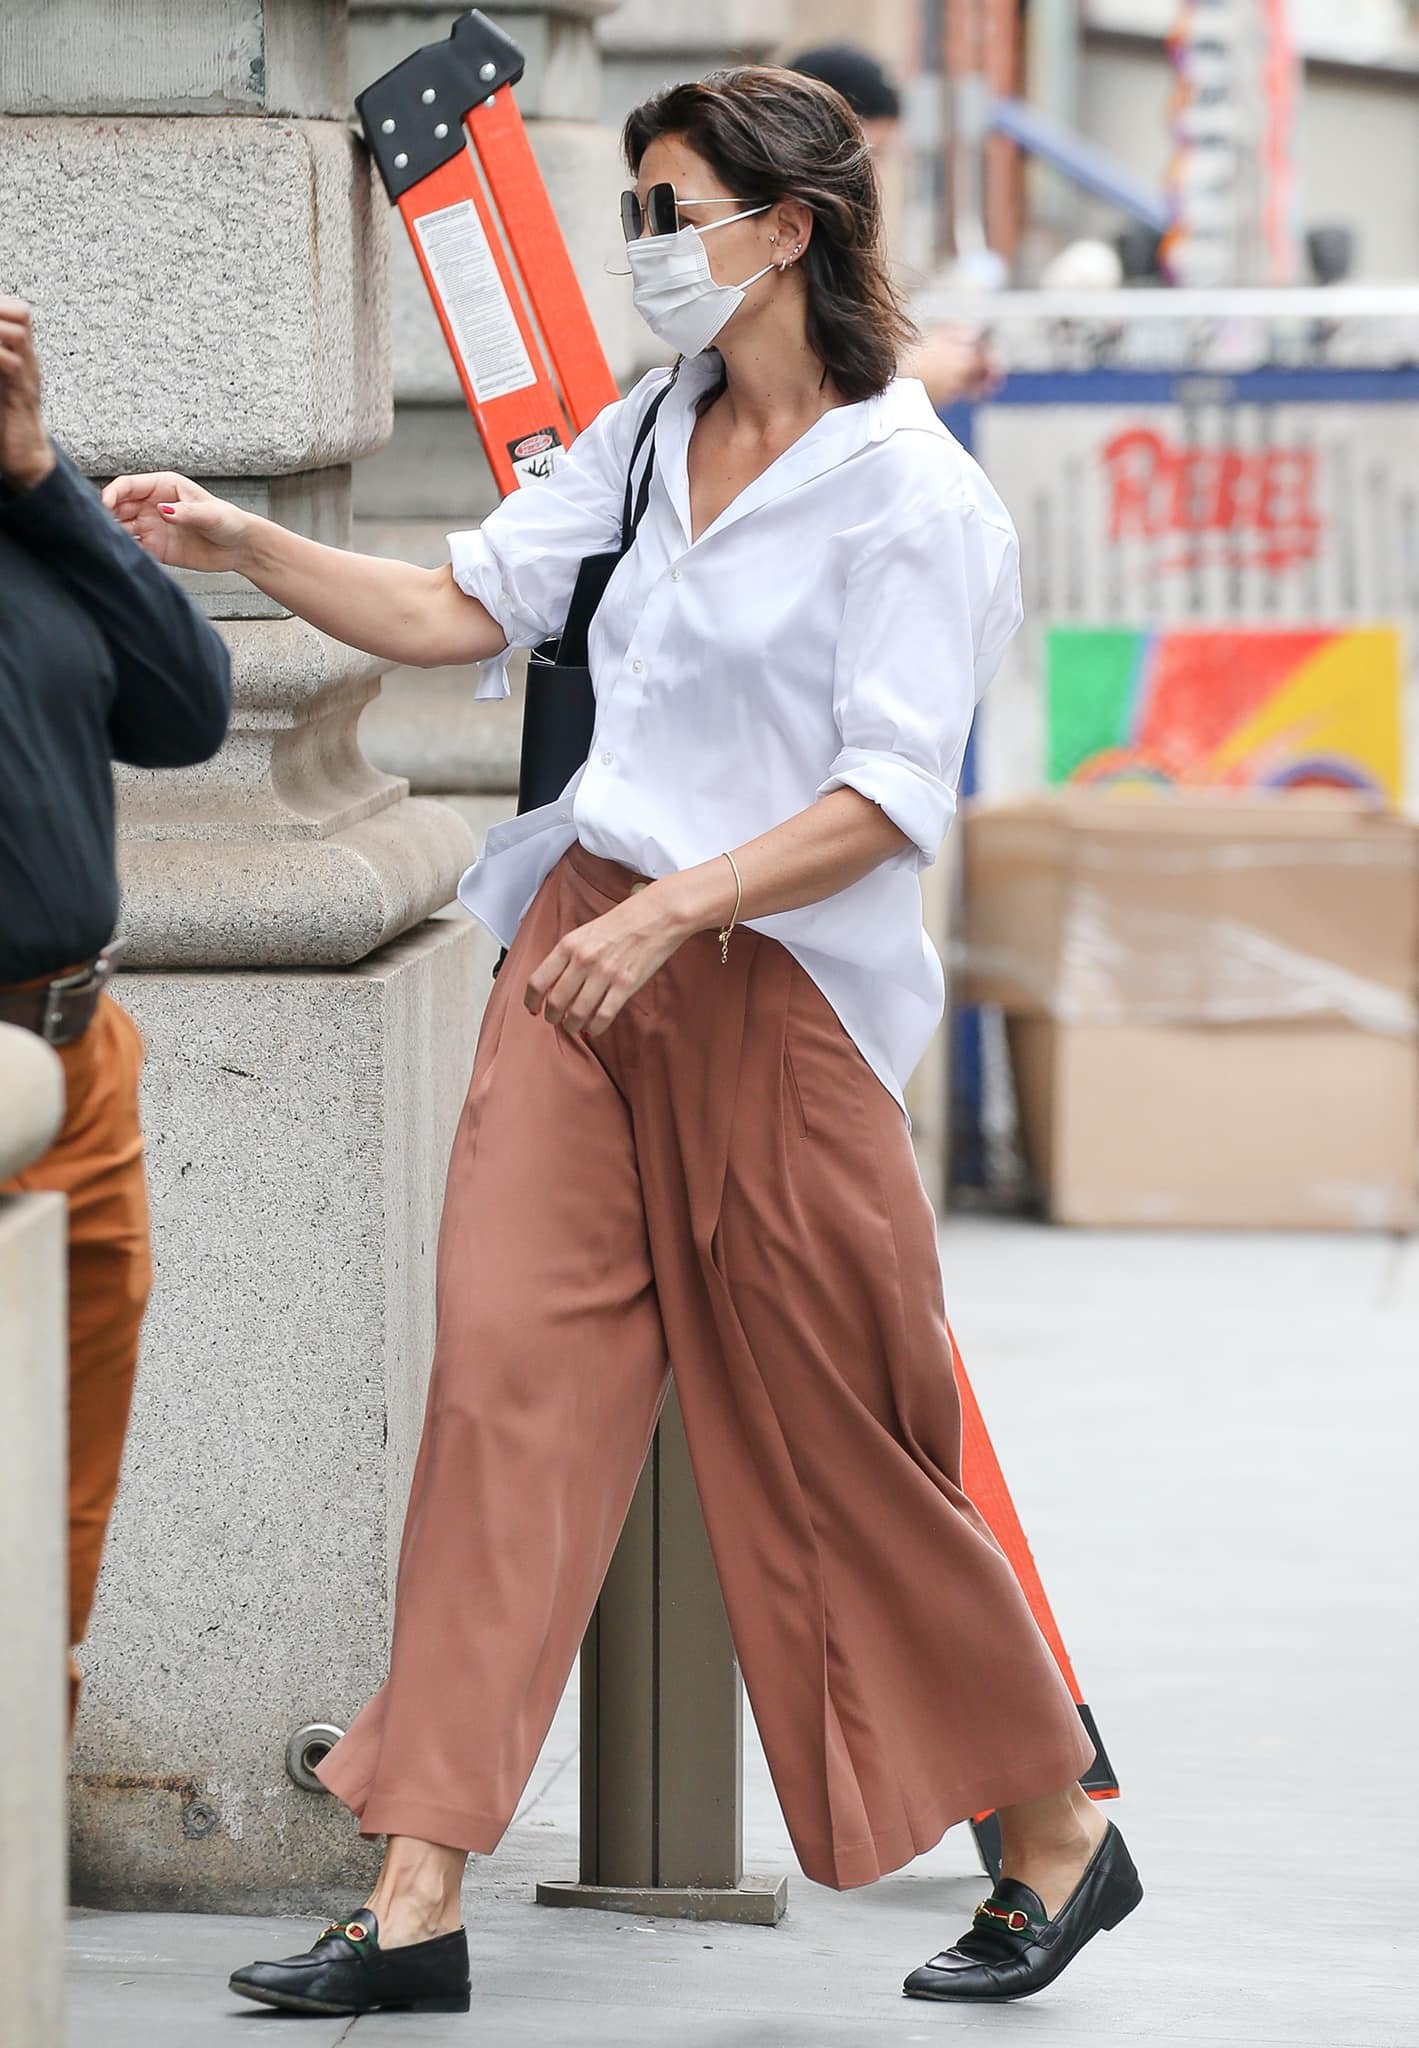 Katie Holmes nails a menswear-inspired outfit with an oversized white shirt and wide-leg trousers